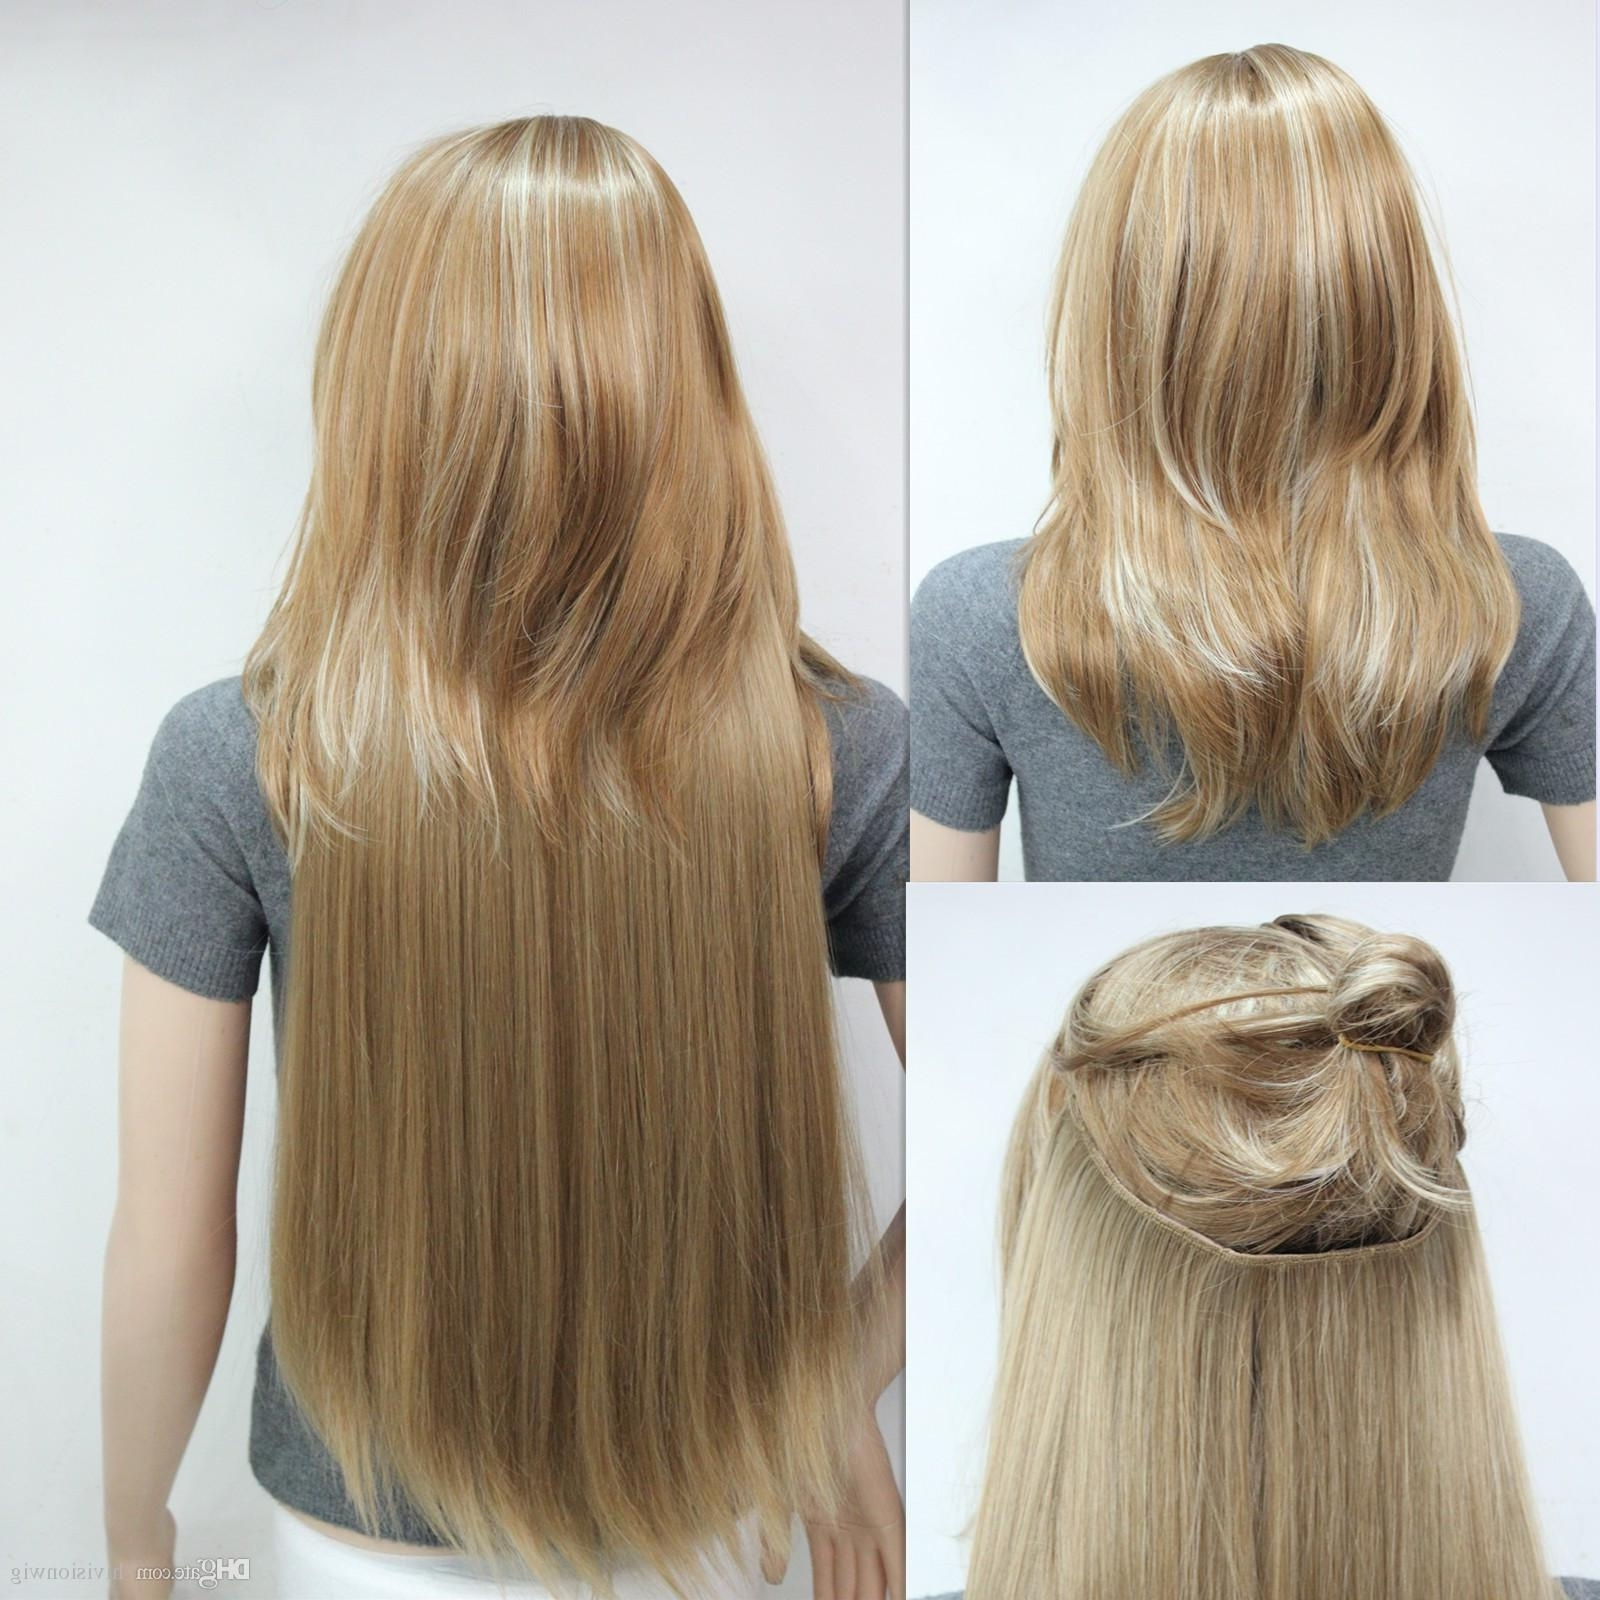 New Invisible Wire Fish Line Clip In Hair Extensions Straight Full Intended For Trendy Full And Fluffy Blonde Ponytail Hairstyles (View 16 of 20)